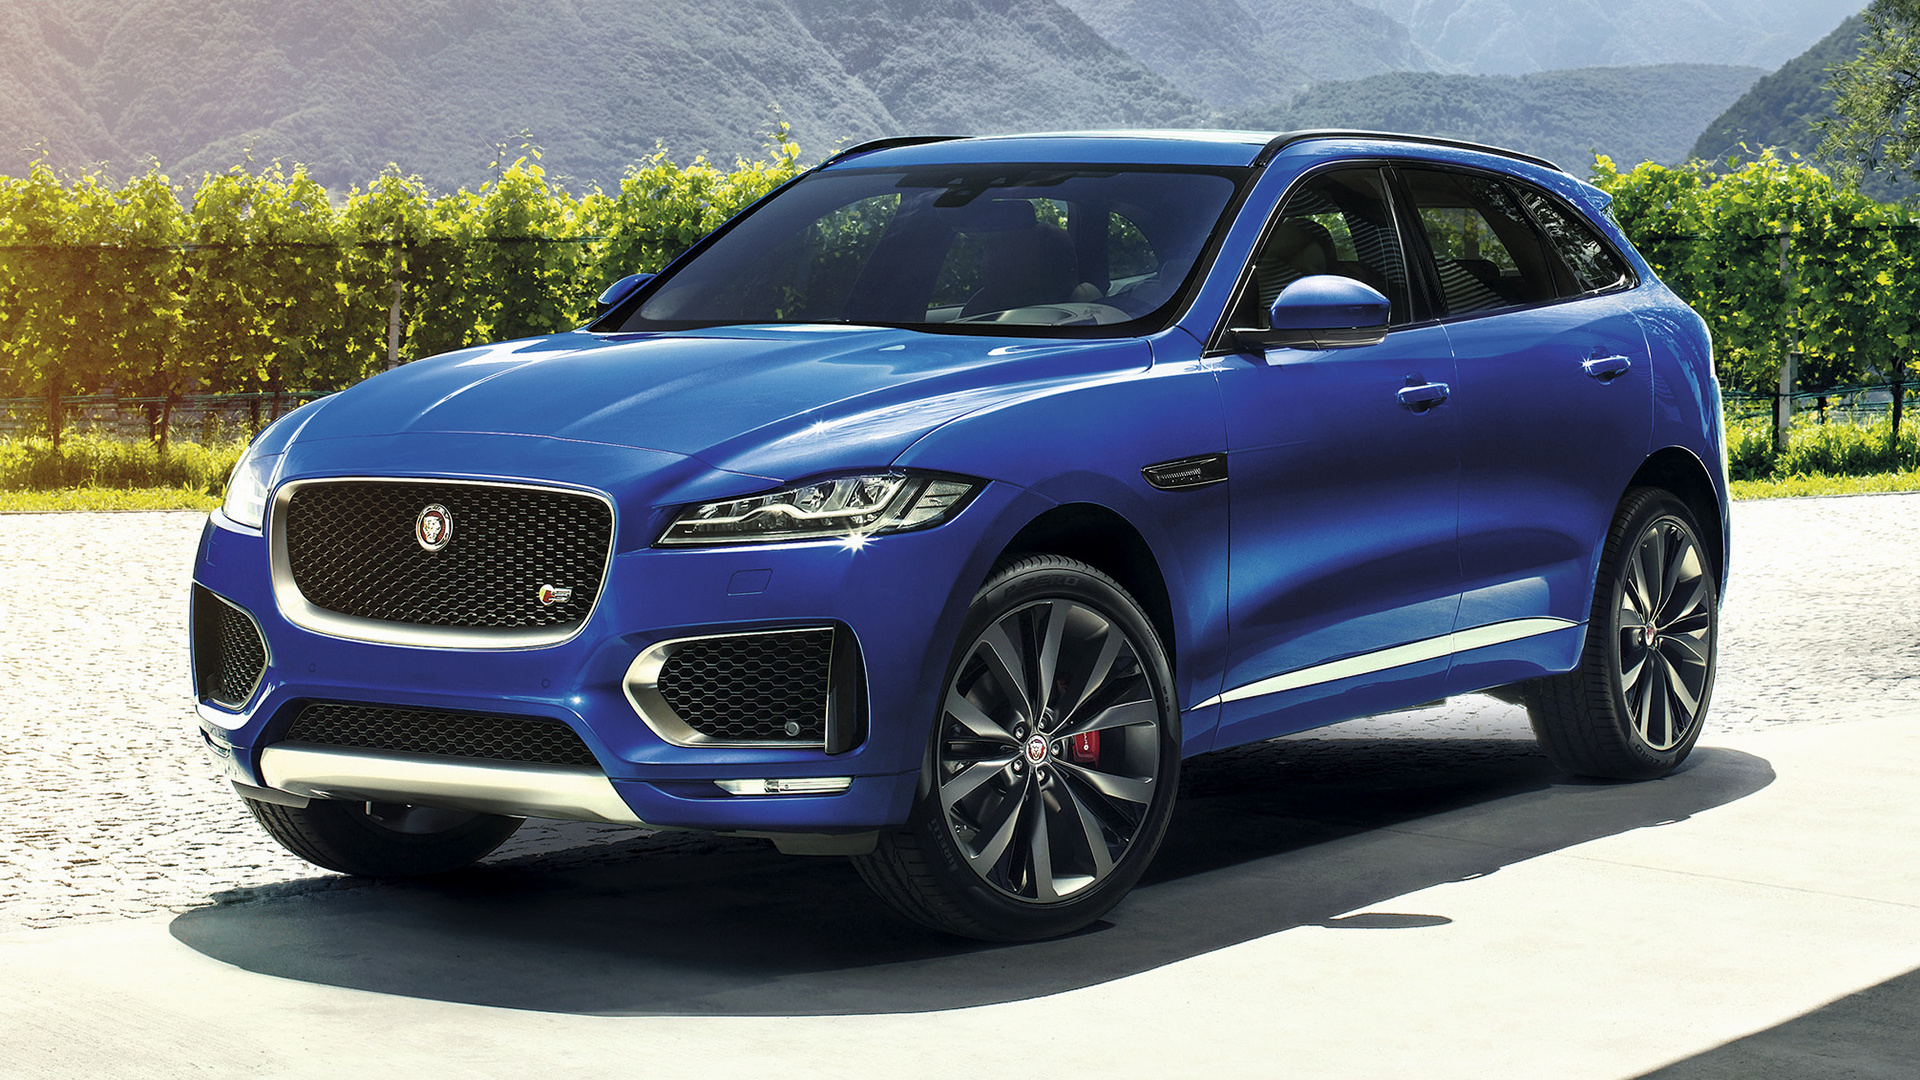 Jaguar F-Pace S (2016) Wallpapers and HD Images - Car Pixel